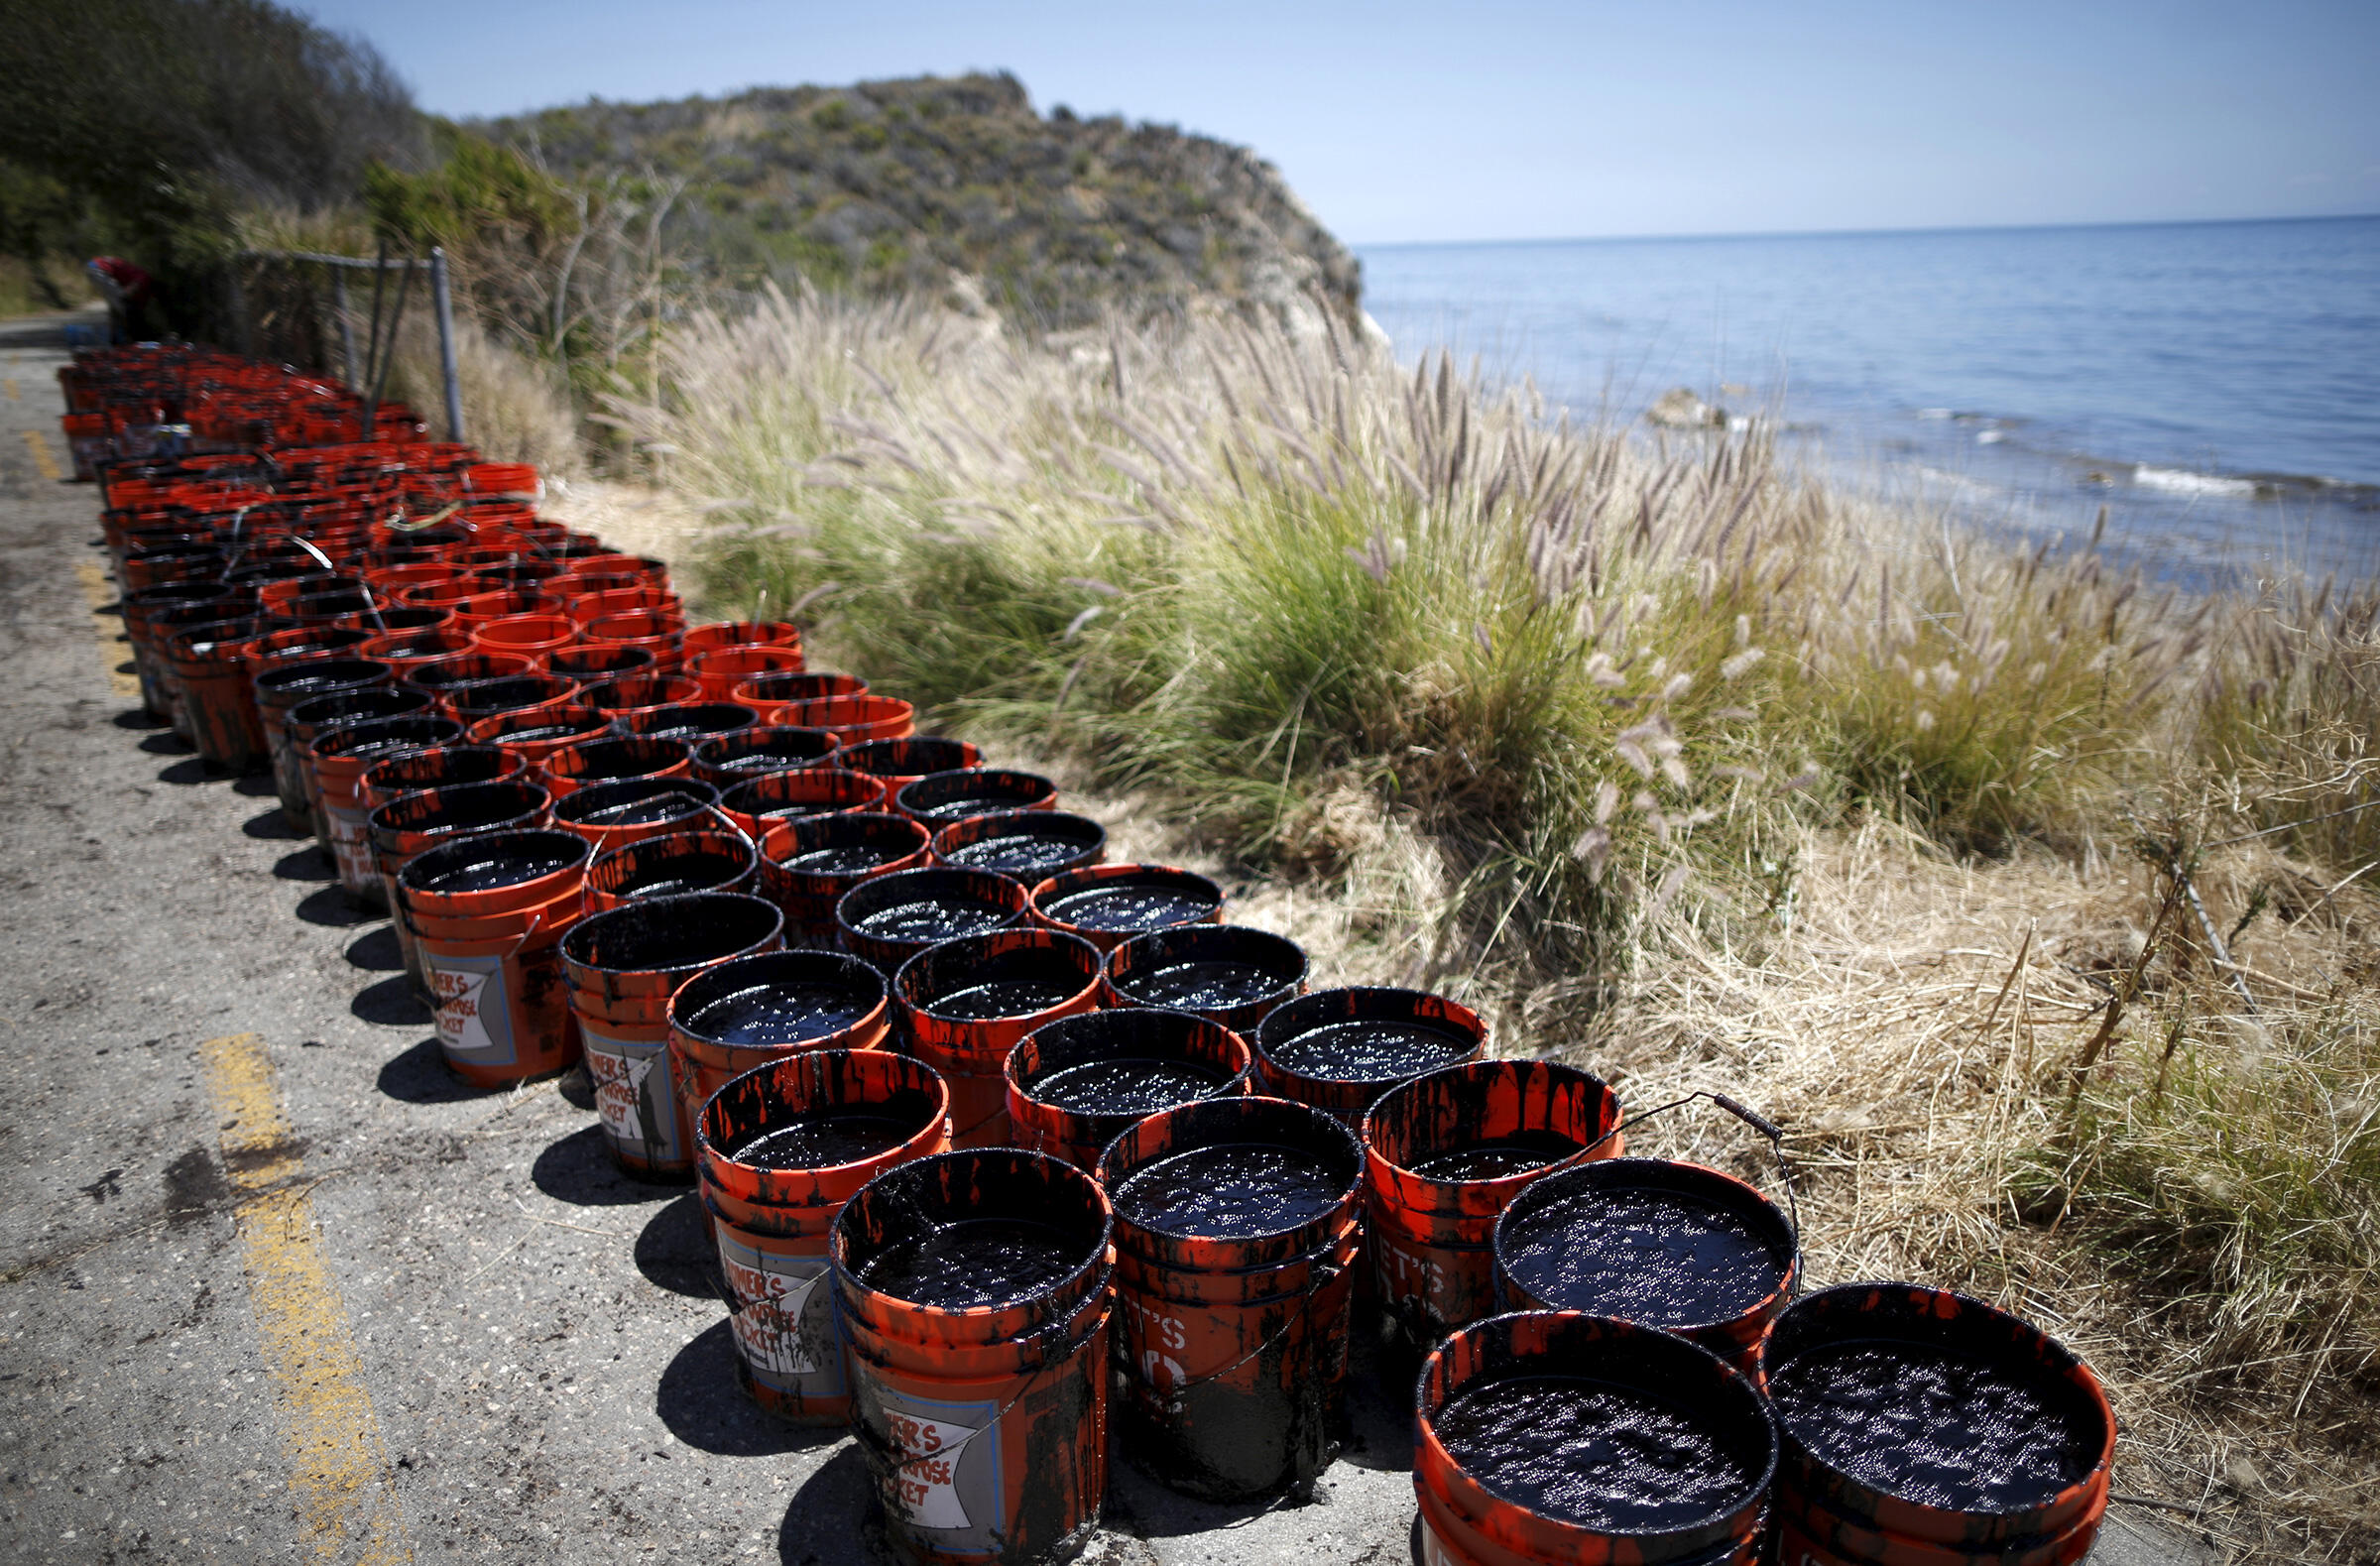 Before official cleanup crews descended on petroleum-soaked beaches, local residents scooped up thousands of gallons of crude along the coast of Refugio State Beach in Goleta, California. Lucy Nicholson/Reuters